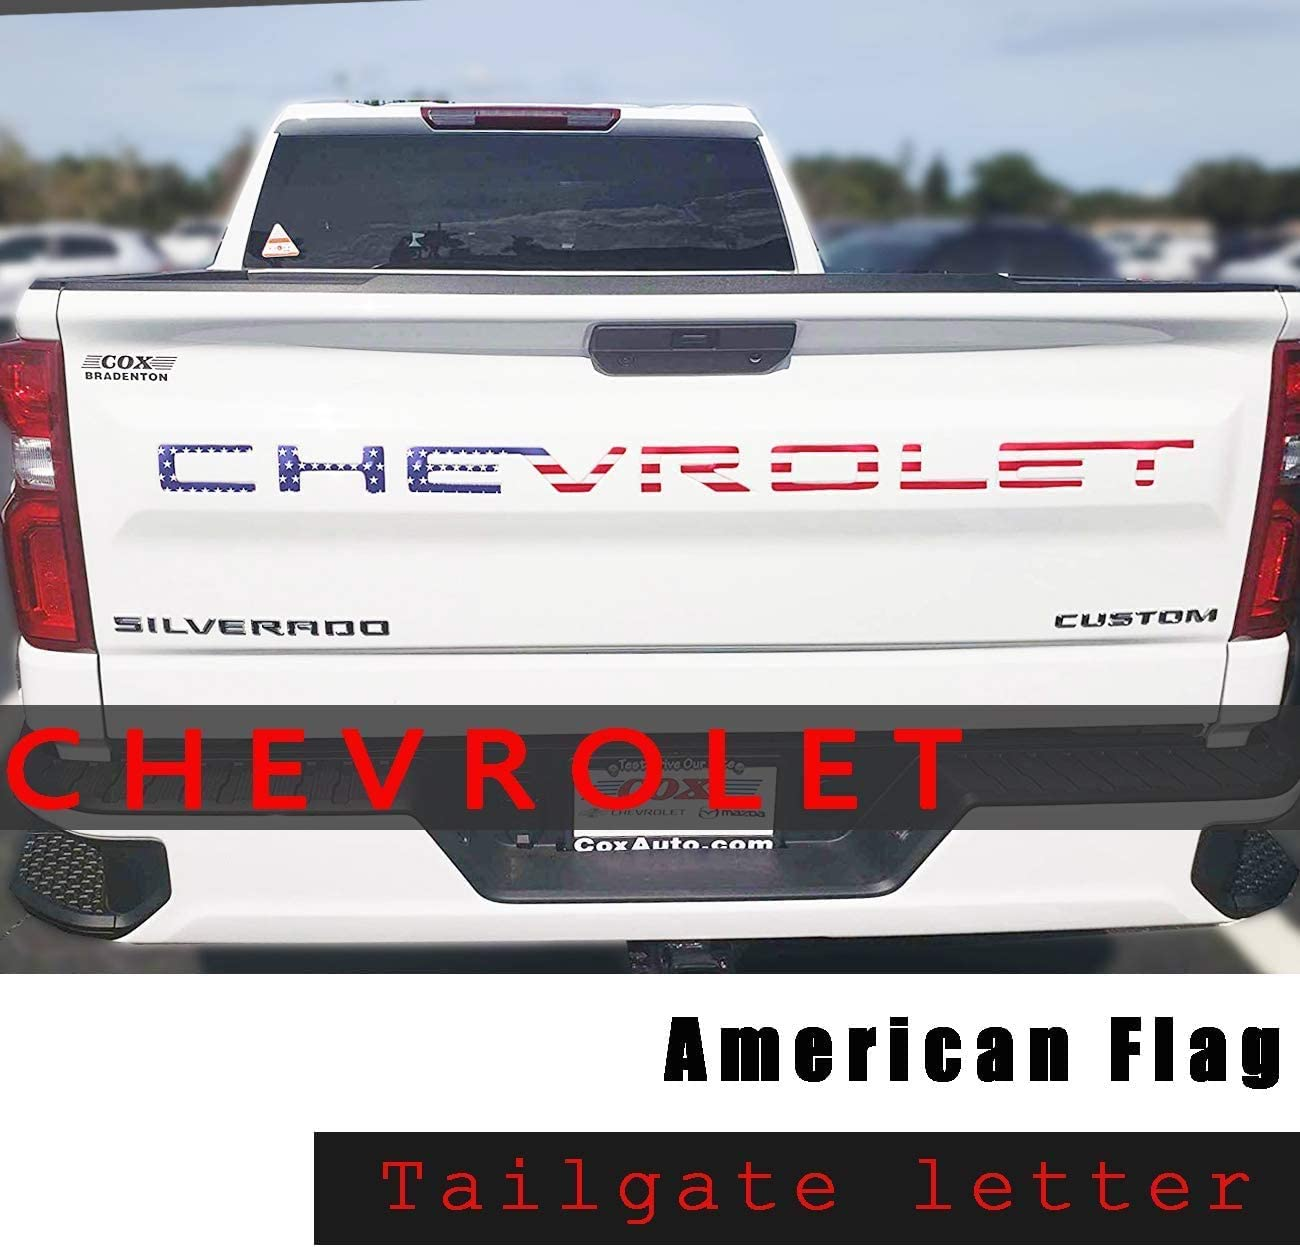 White 3M Adhesive /& 3D Raised Tailgate Letters for 2019 2020 Chevr Silverado Accessories Funsport Tailgate Insert Letters